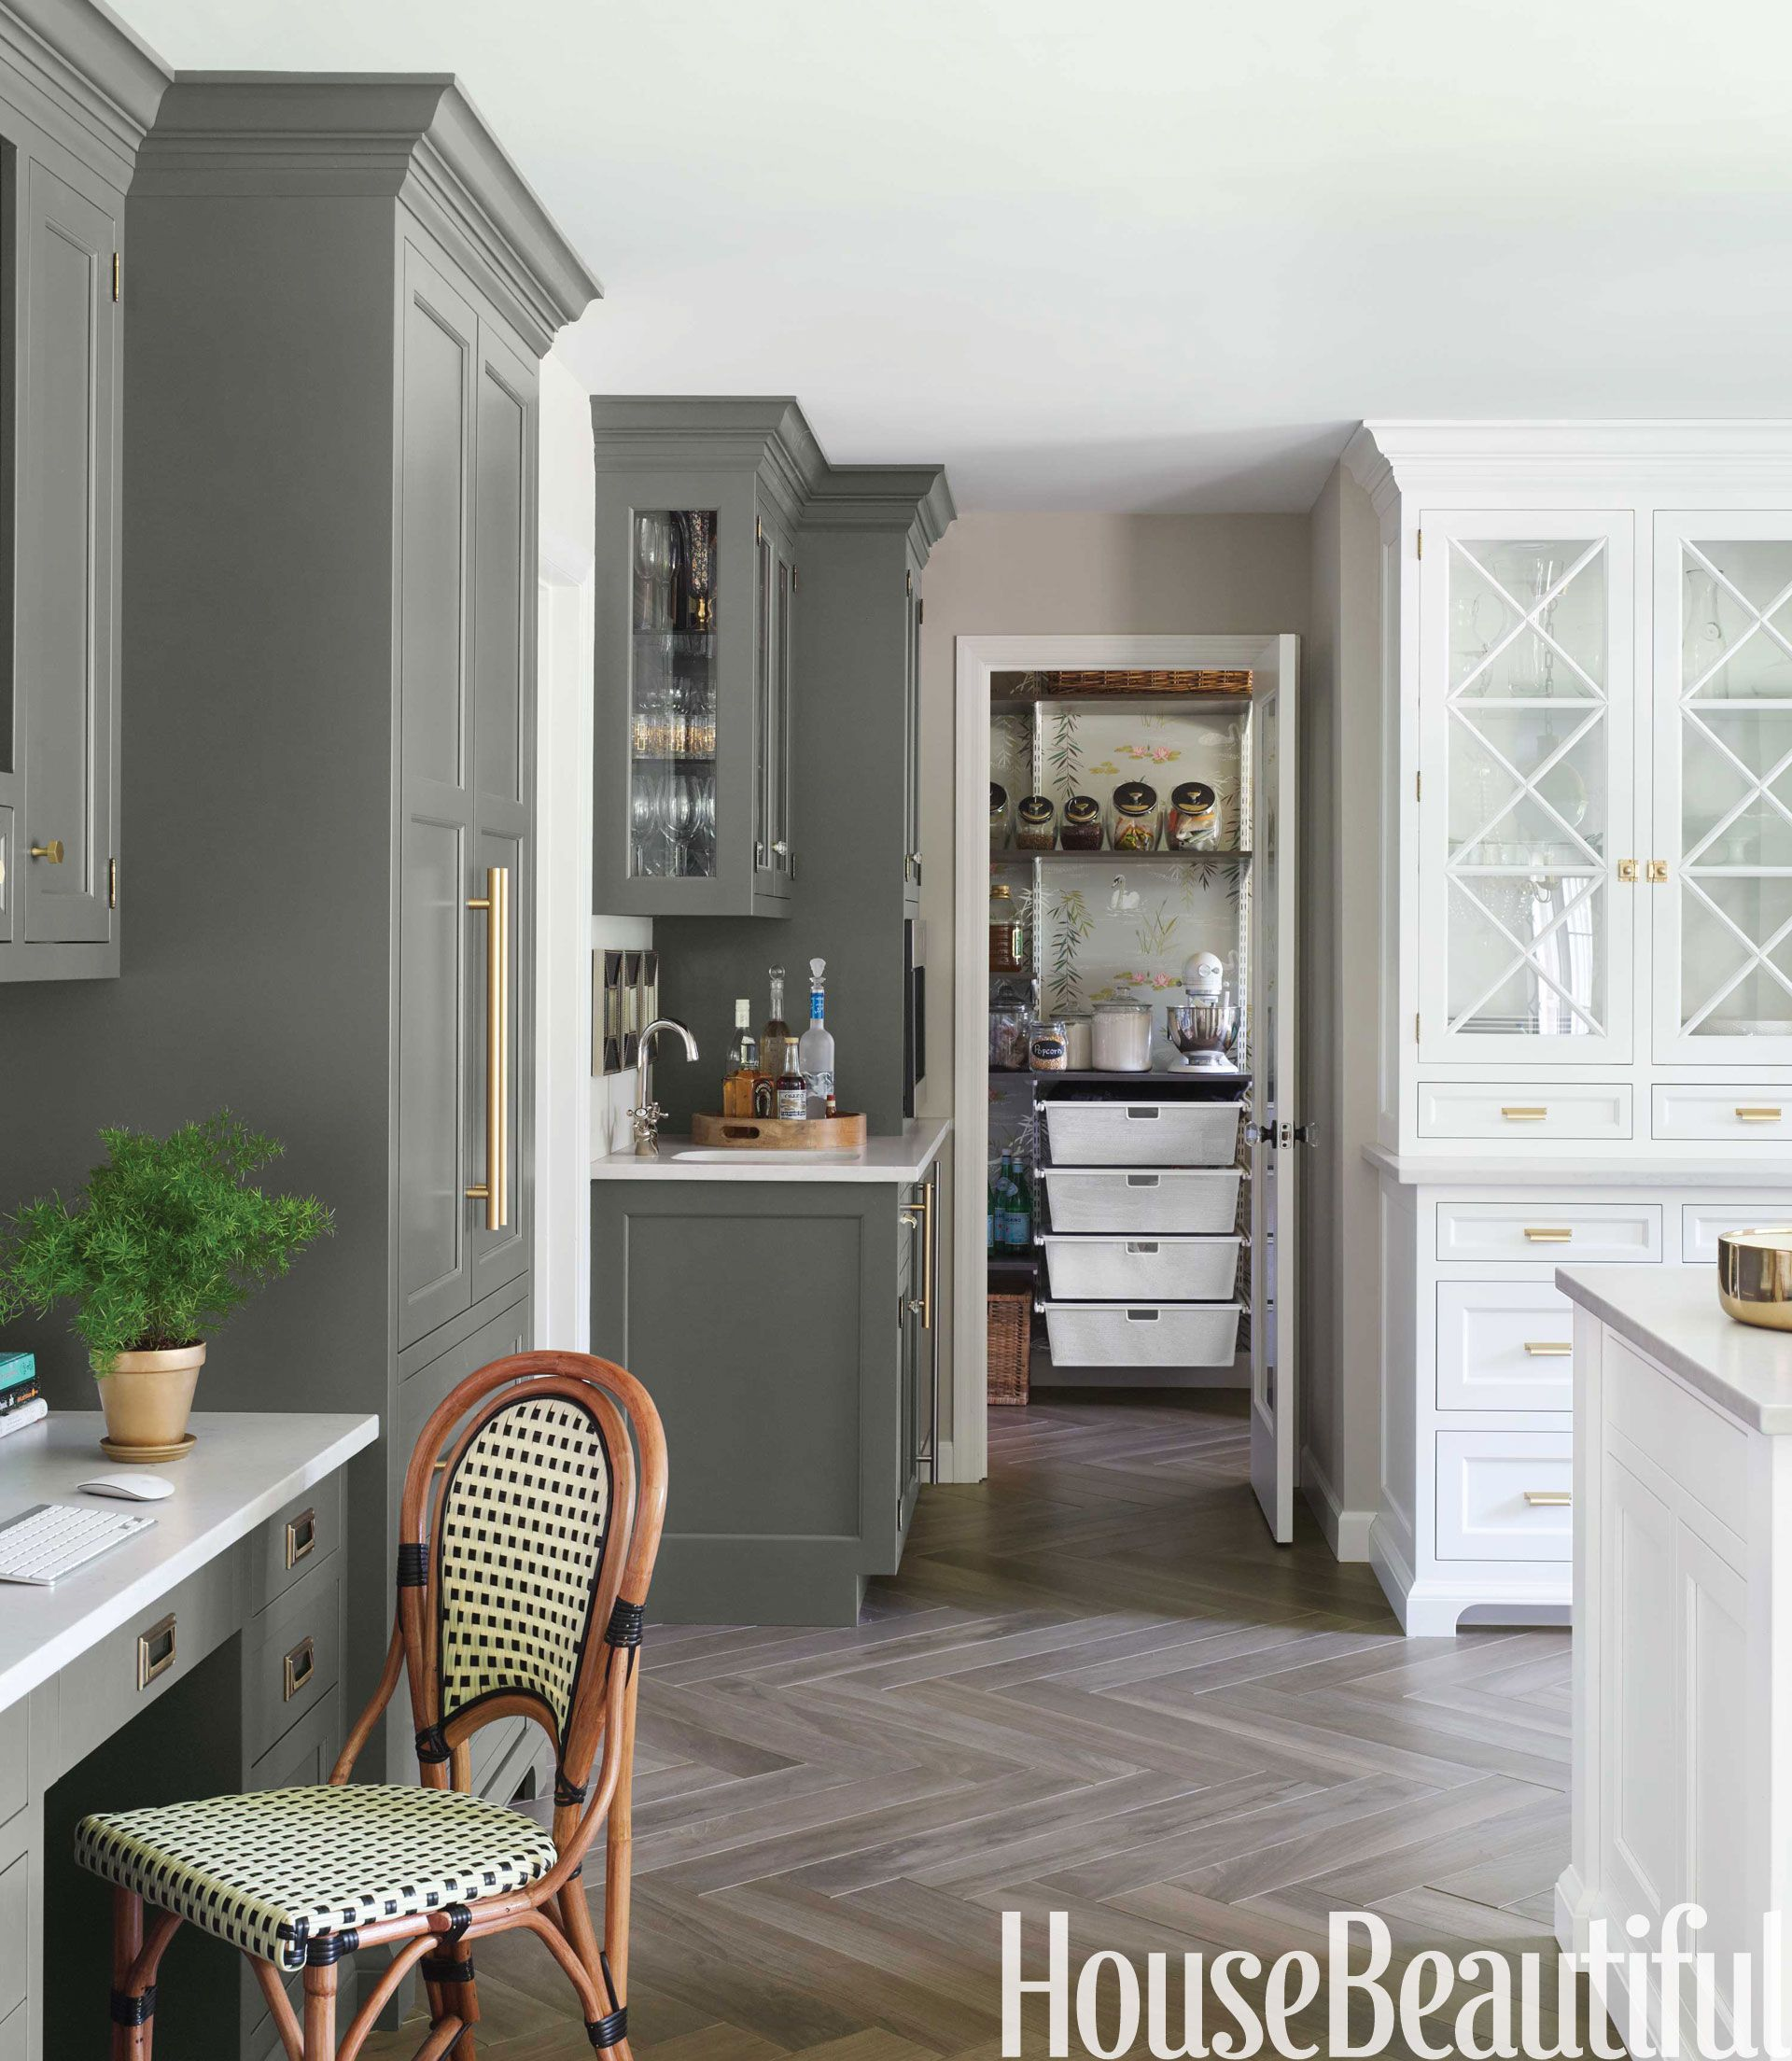 Laundry Room Pantry Ideas Benjamin Moore Antique White: Turning A Laundry Room Into A Pantry Freed Up Space For A